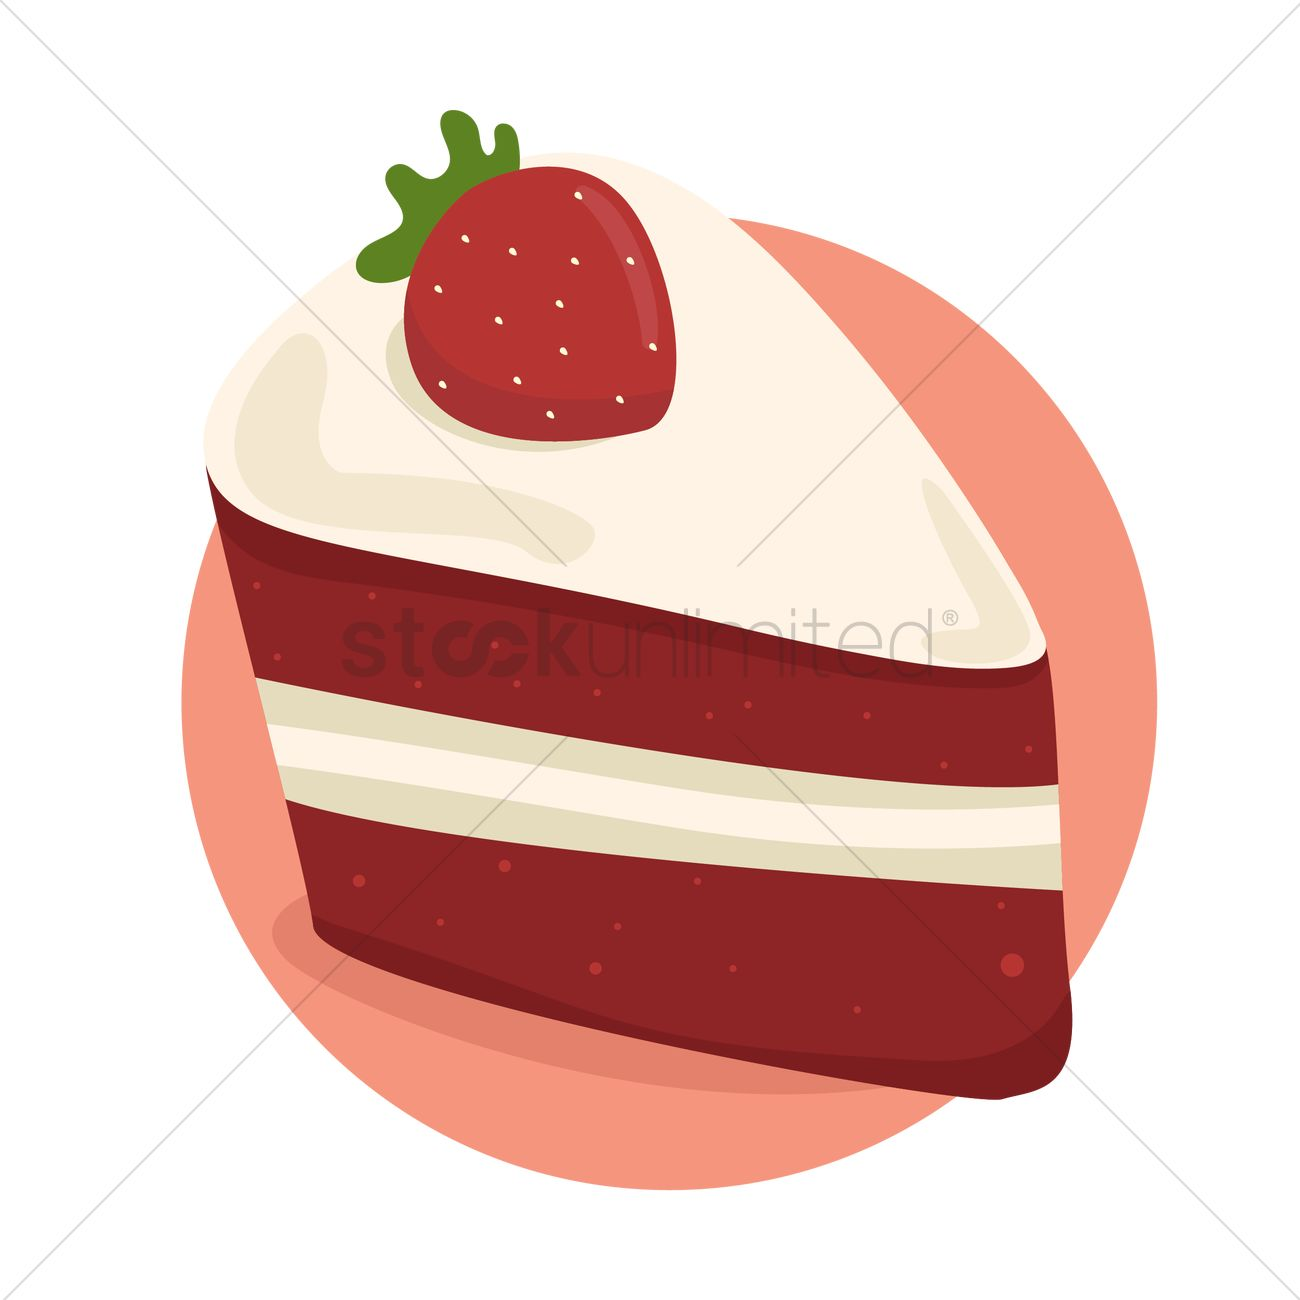 Cake slice. Of clipart free download